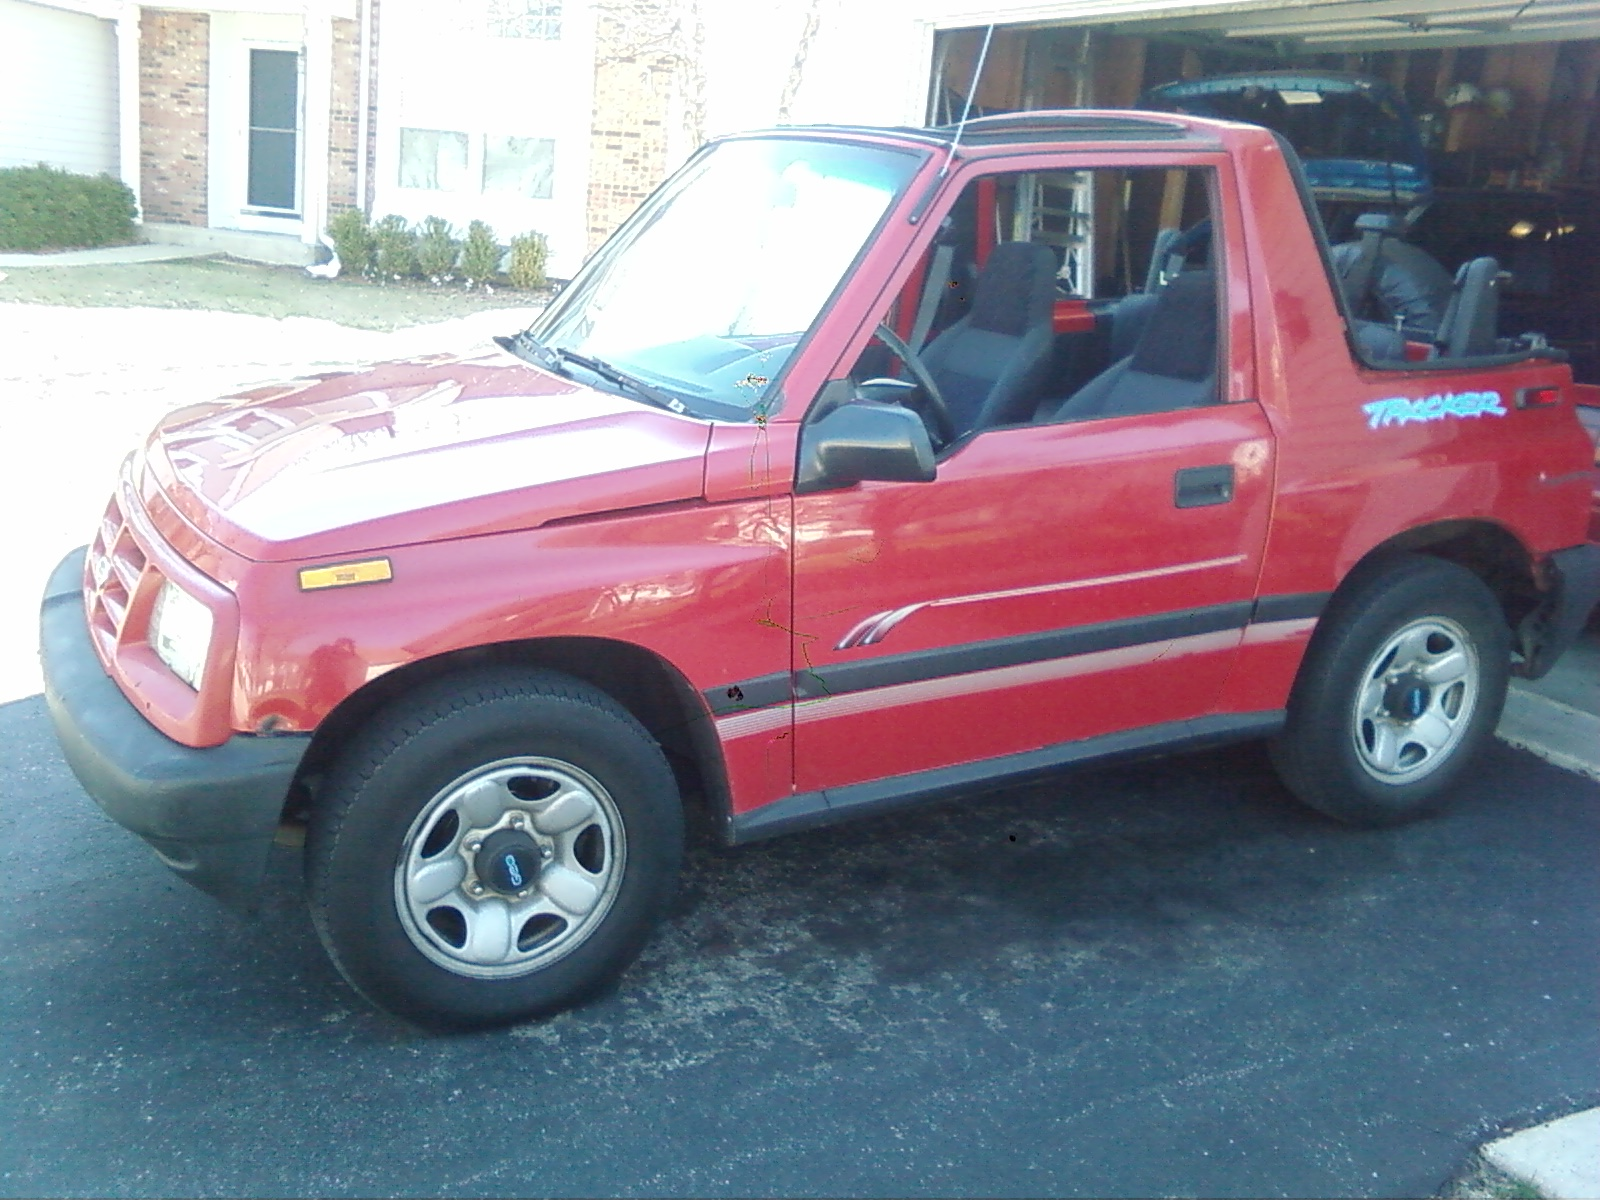 1993 geo tracker information and photos zombiedrive 1993 geo tracker 4 geo tracker 4 sciox Images